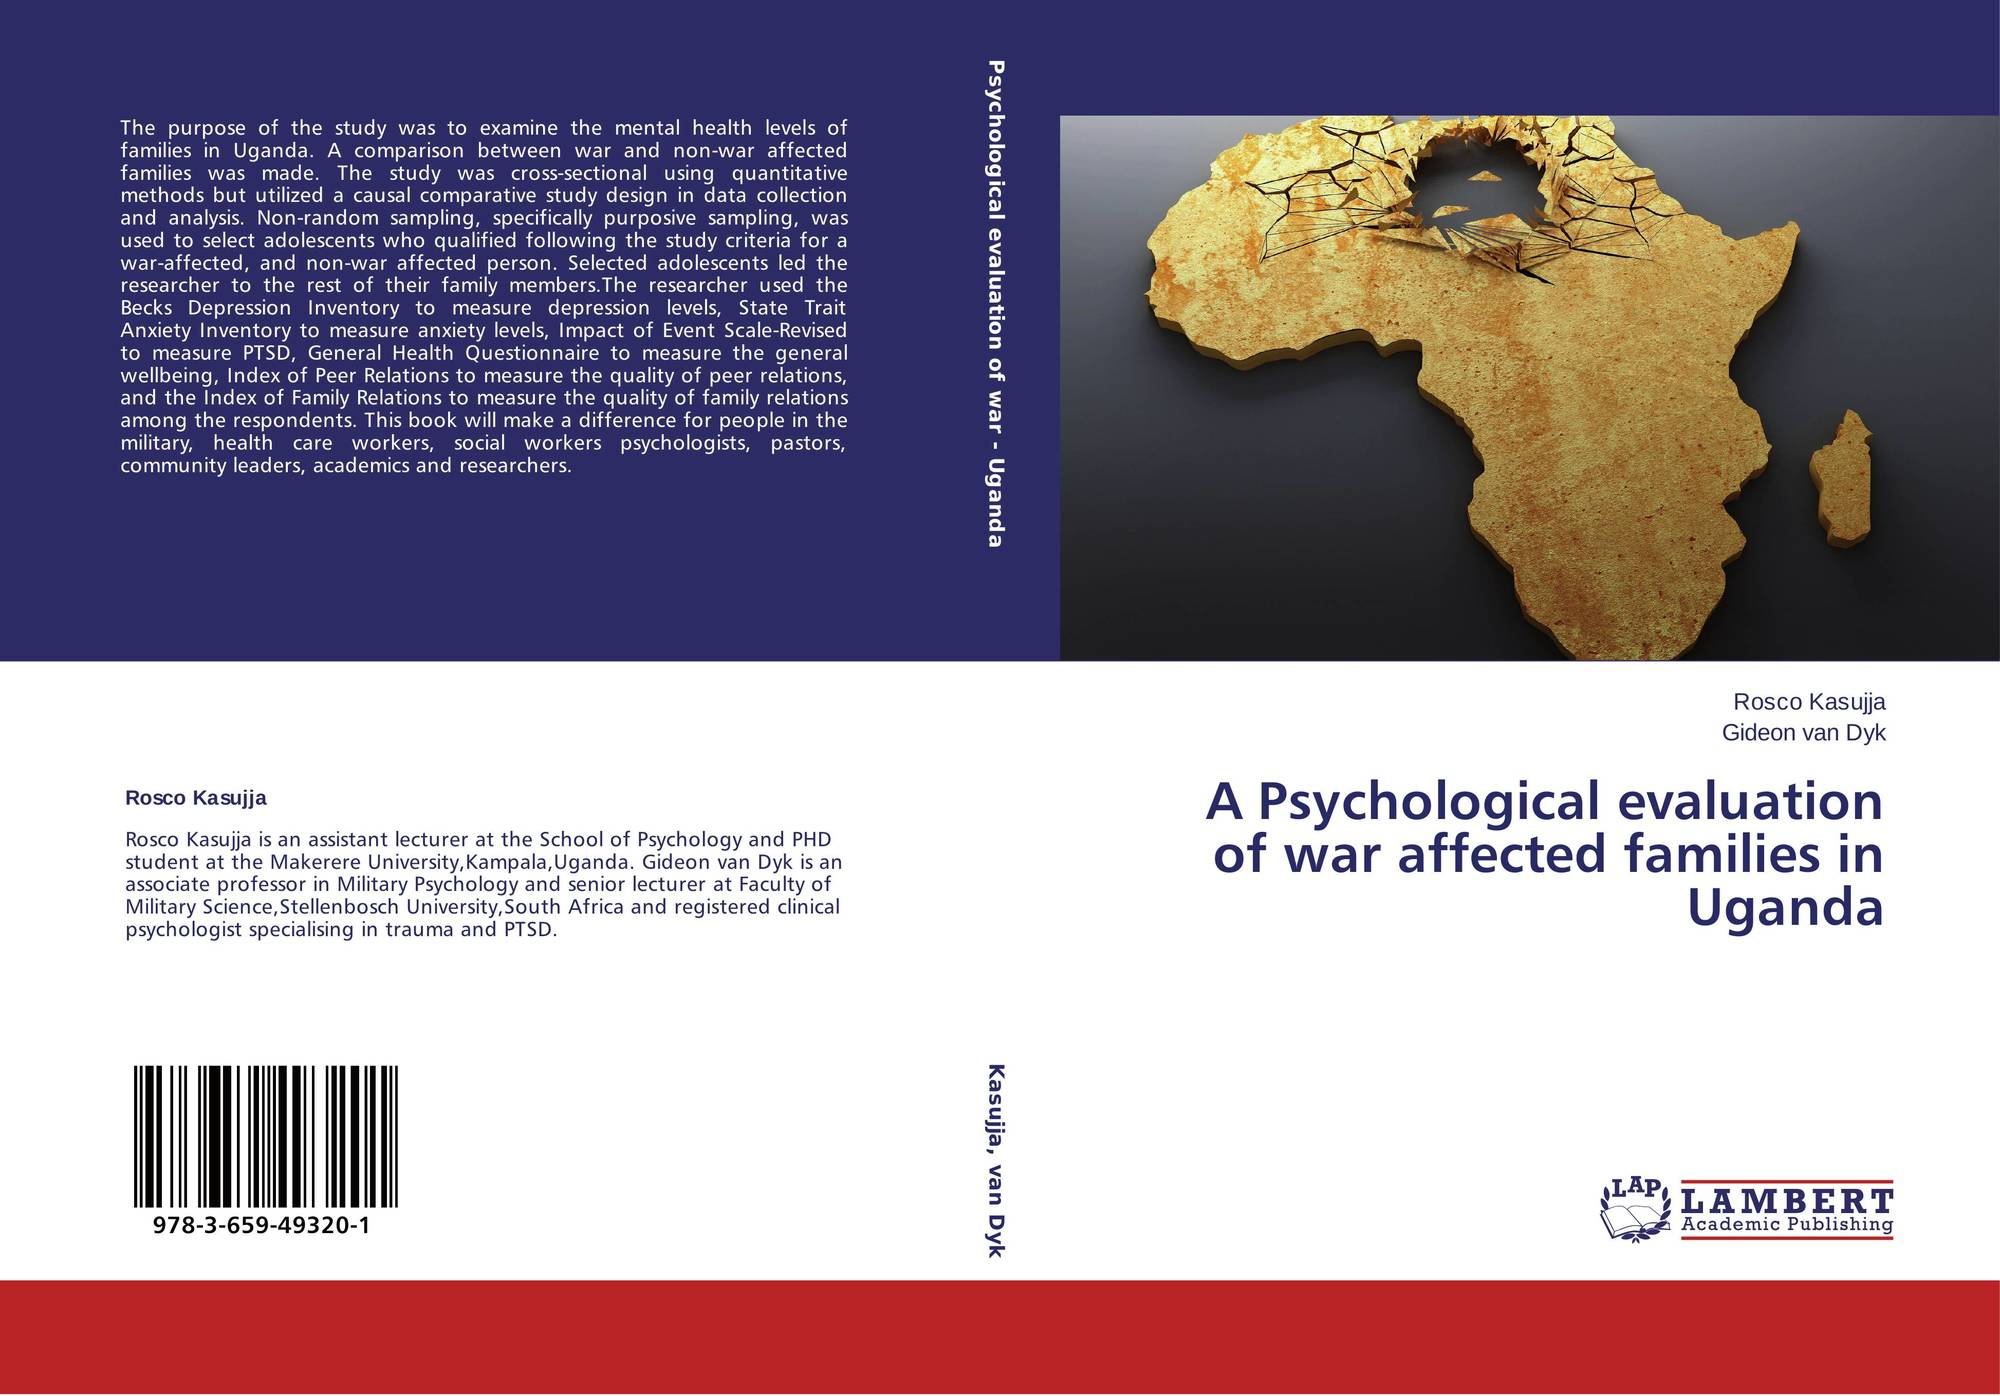 Bookcover Of A Psychological Evaluation Of War Affected Families In Uganda